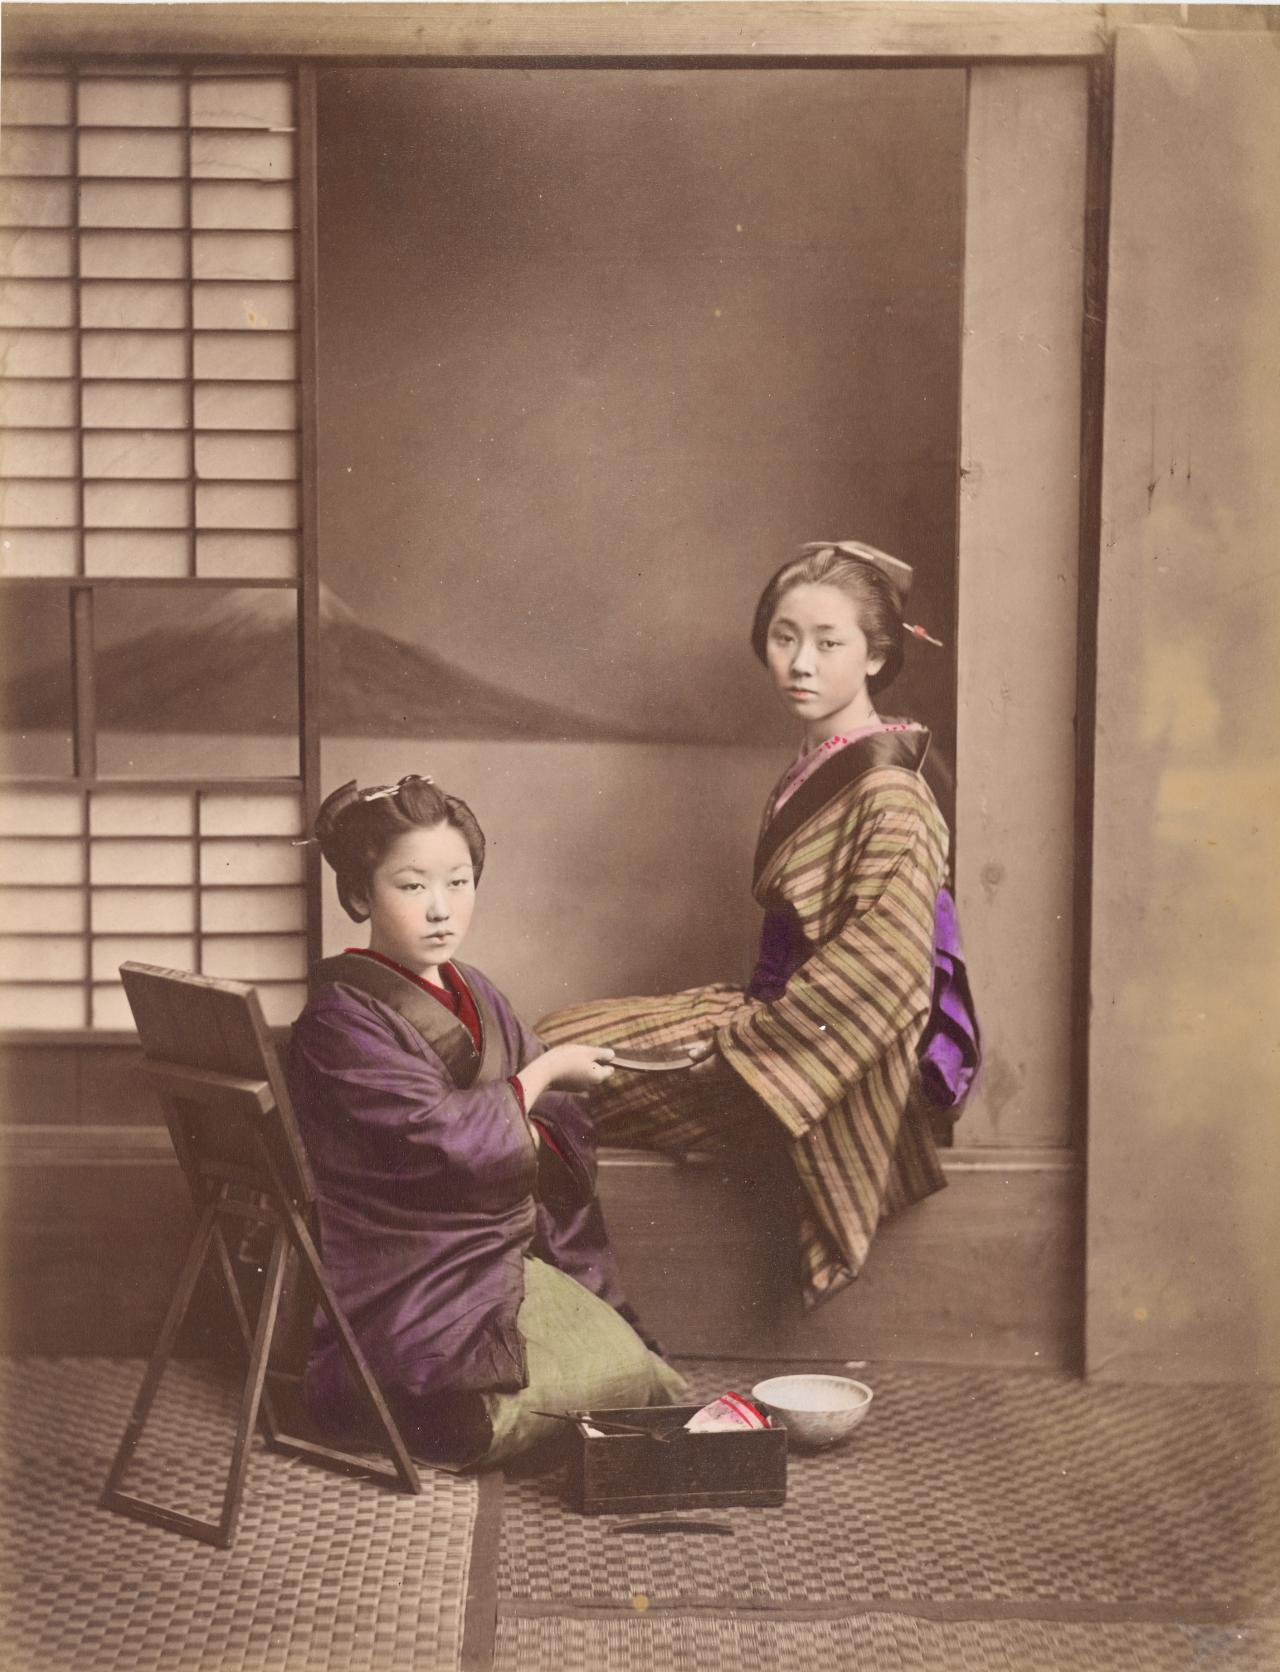 No title (Two Japanese women holding a comb)